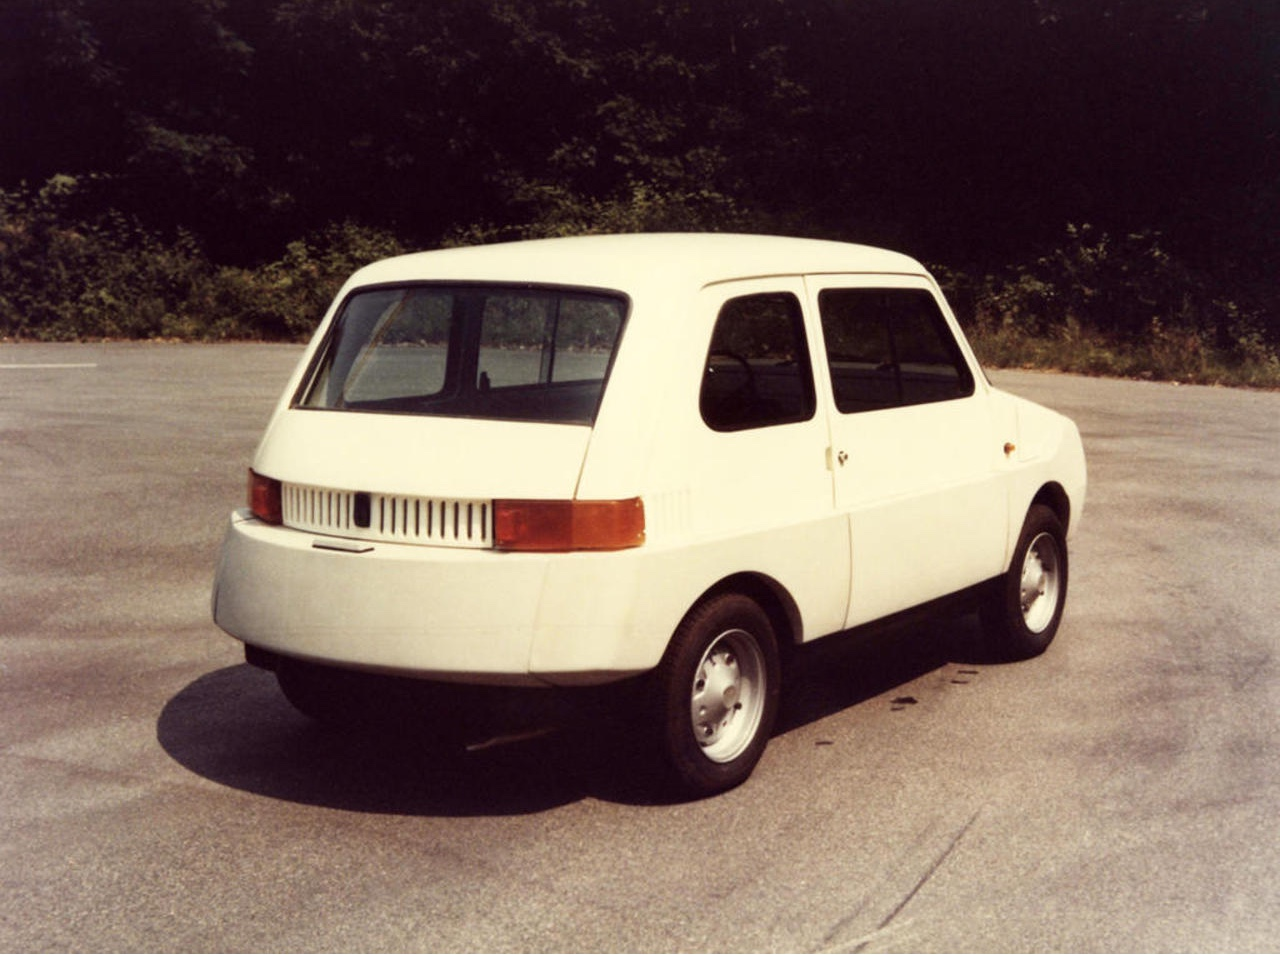 The X 126 Softness was an experimental car prototype for Fiat. It was conceived with an all-around plastic envelope, offering protection against low impact collisions. Image courtesy of Richard Sapper.